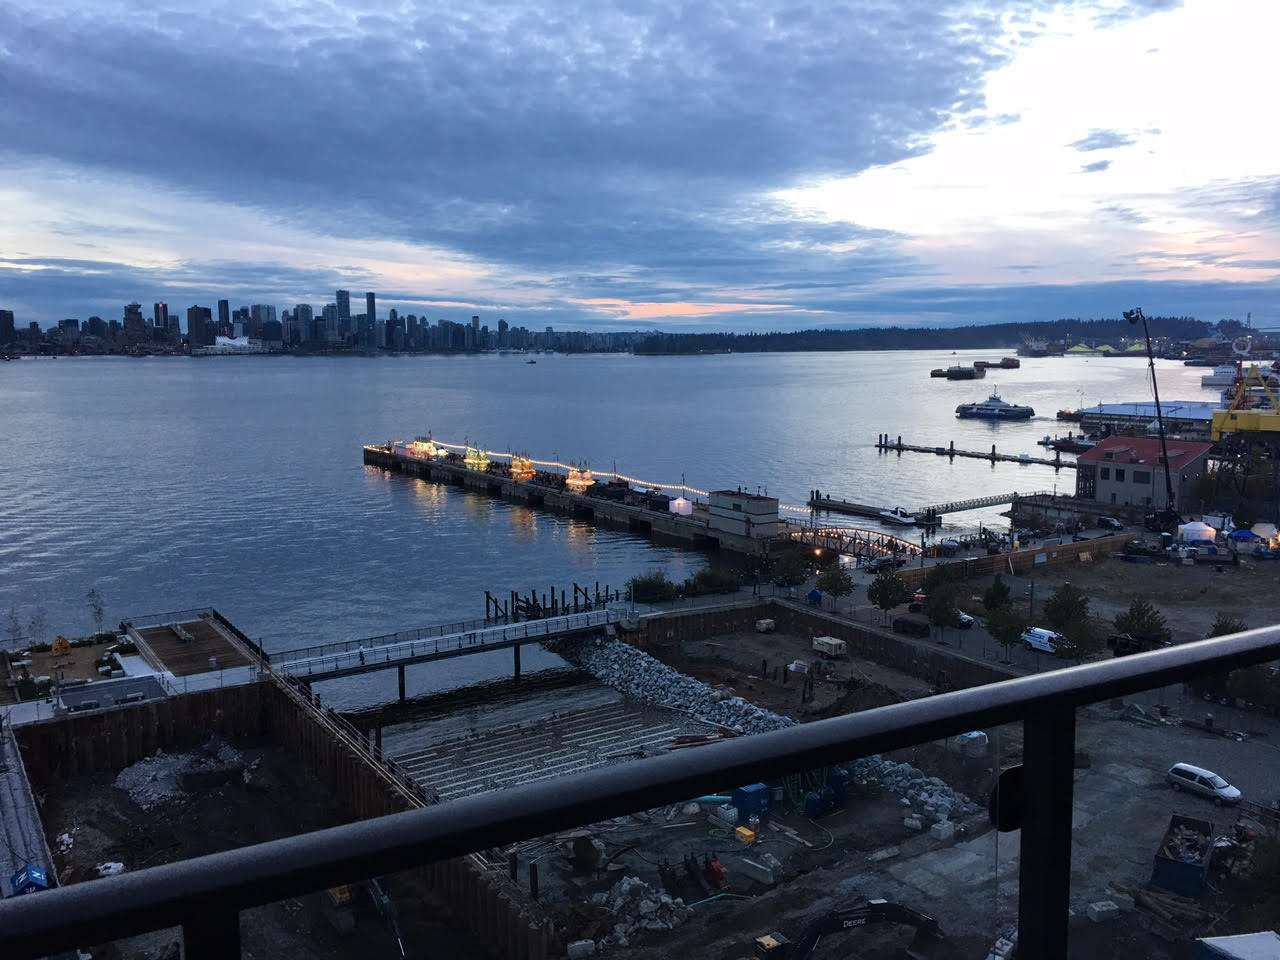 """Photo 3: Photos: 1004 172 VICTORY SHIP Way in North Vancouver: Lower Lonsdale Condo for sale in """"Atrium at the Pier"""" : MLS®# R2147061"""